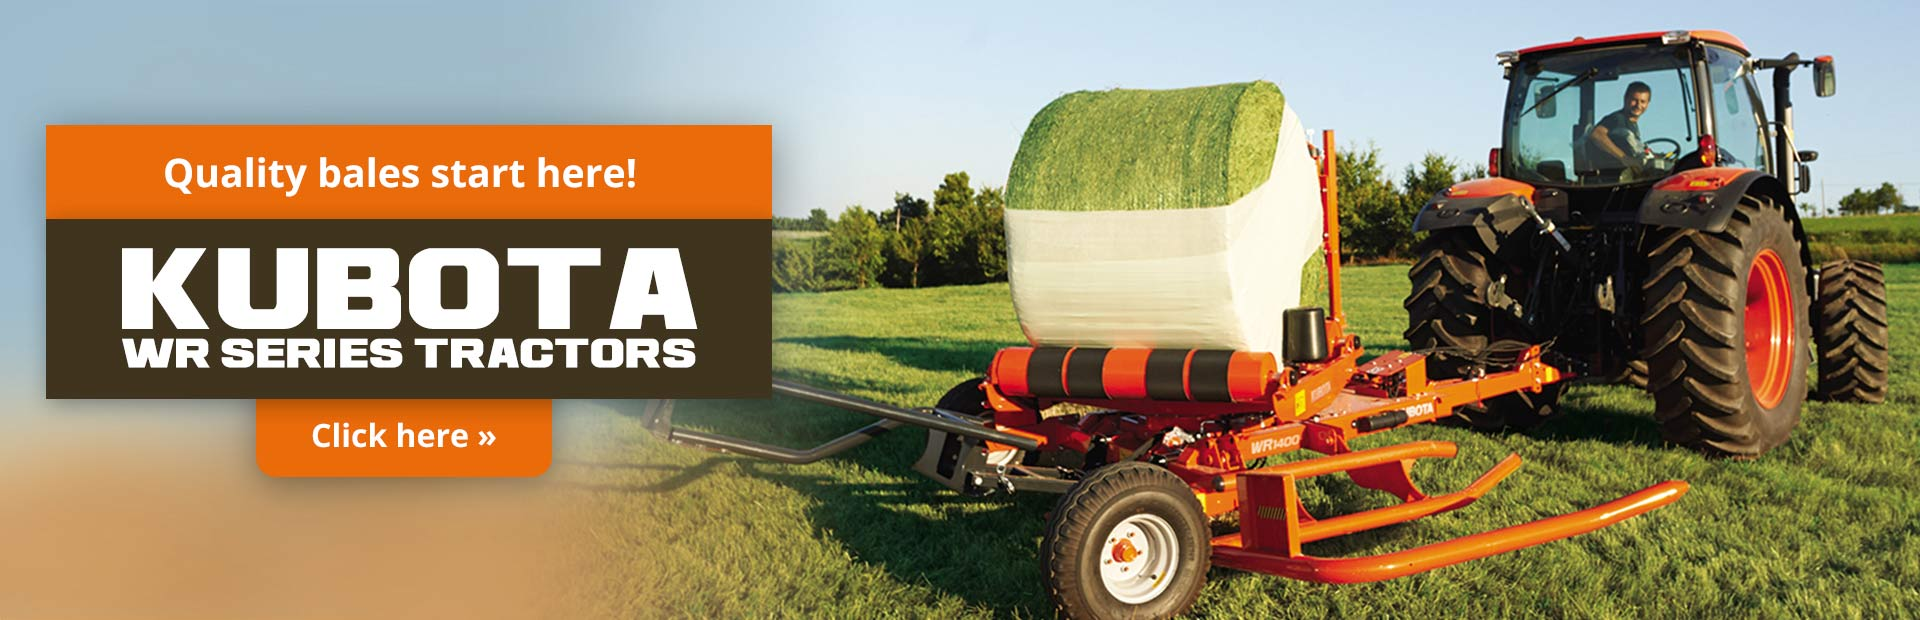 Click here to view our selection of Kubota WR series tractors!